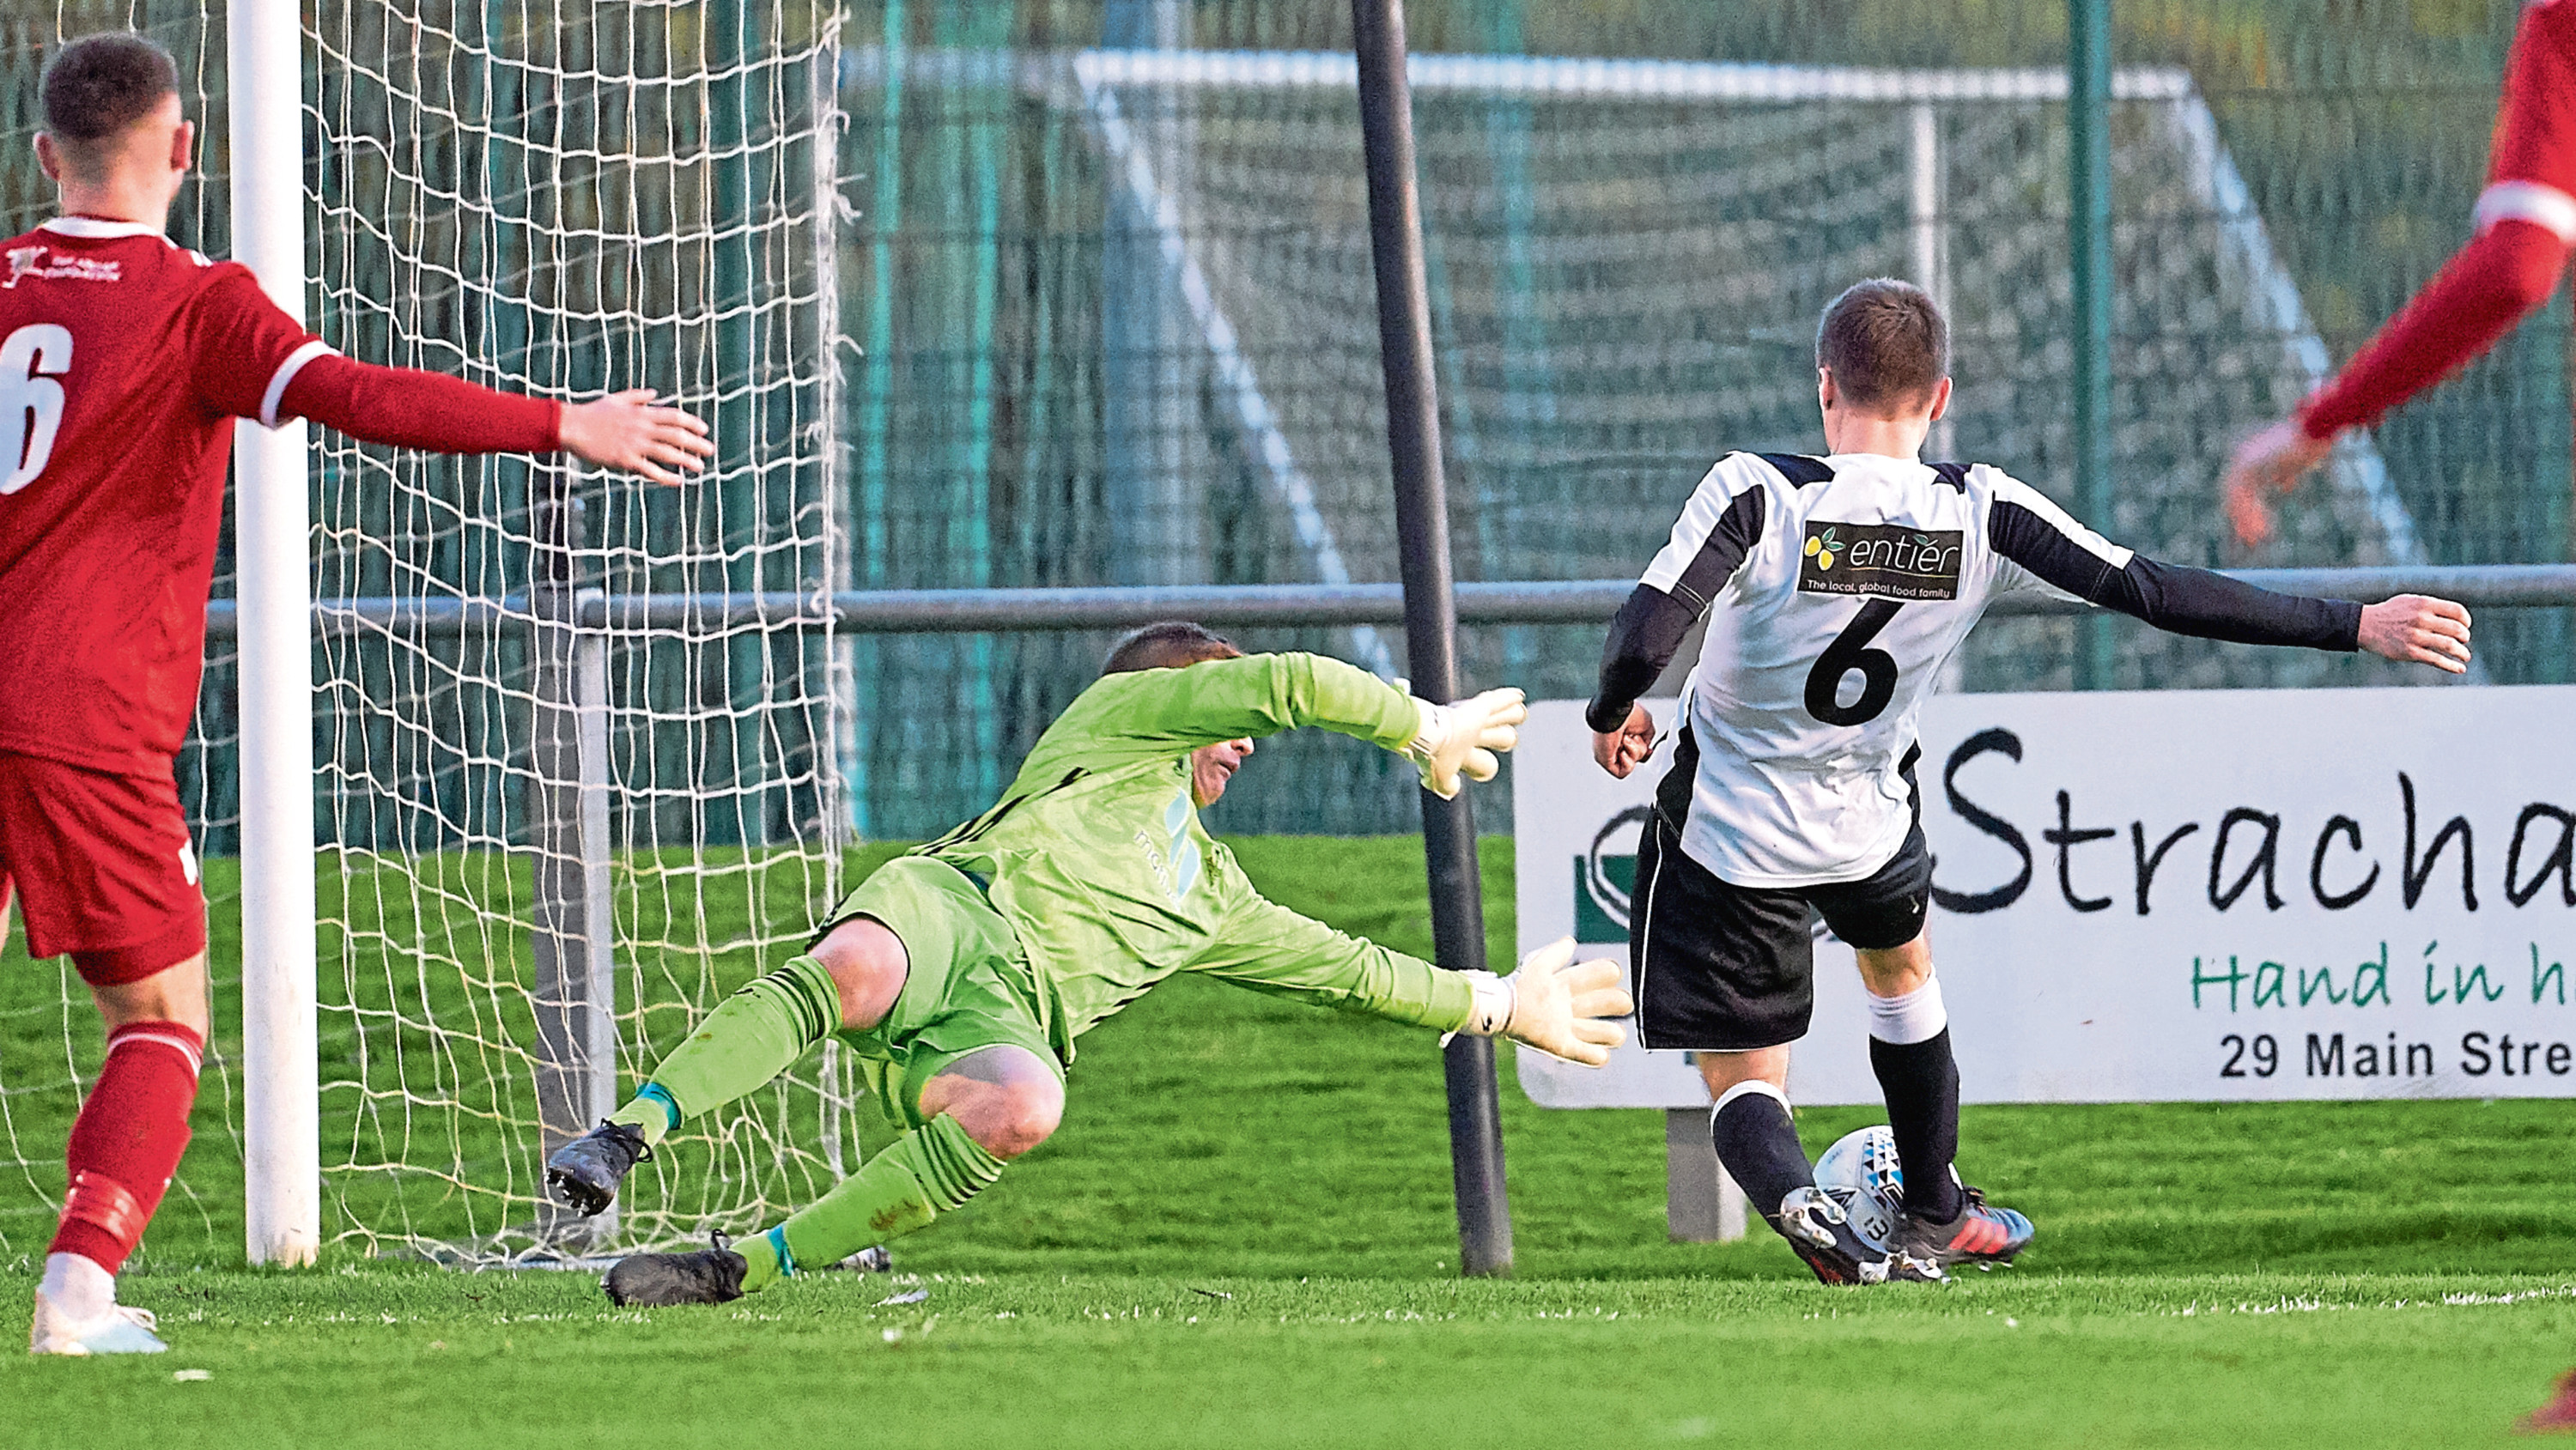 A Paul Young strike is saved by Grant Pennet of Deveronvale.